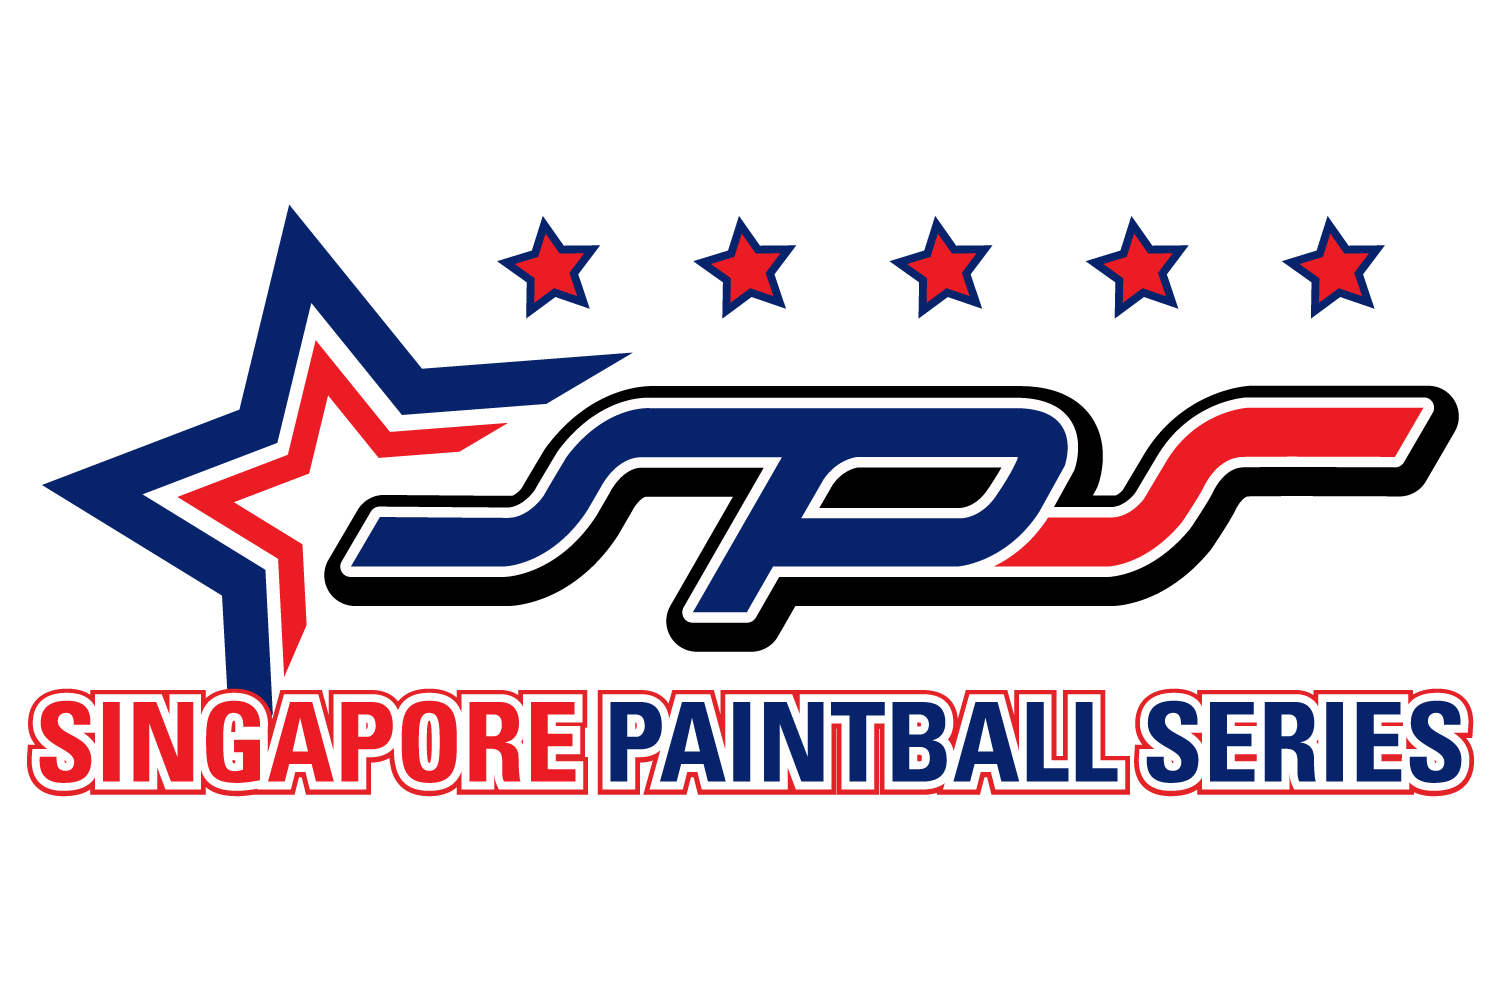 Singapore Paintball Series